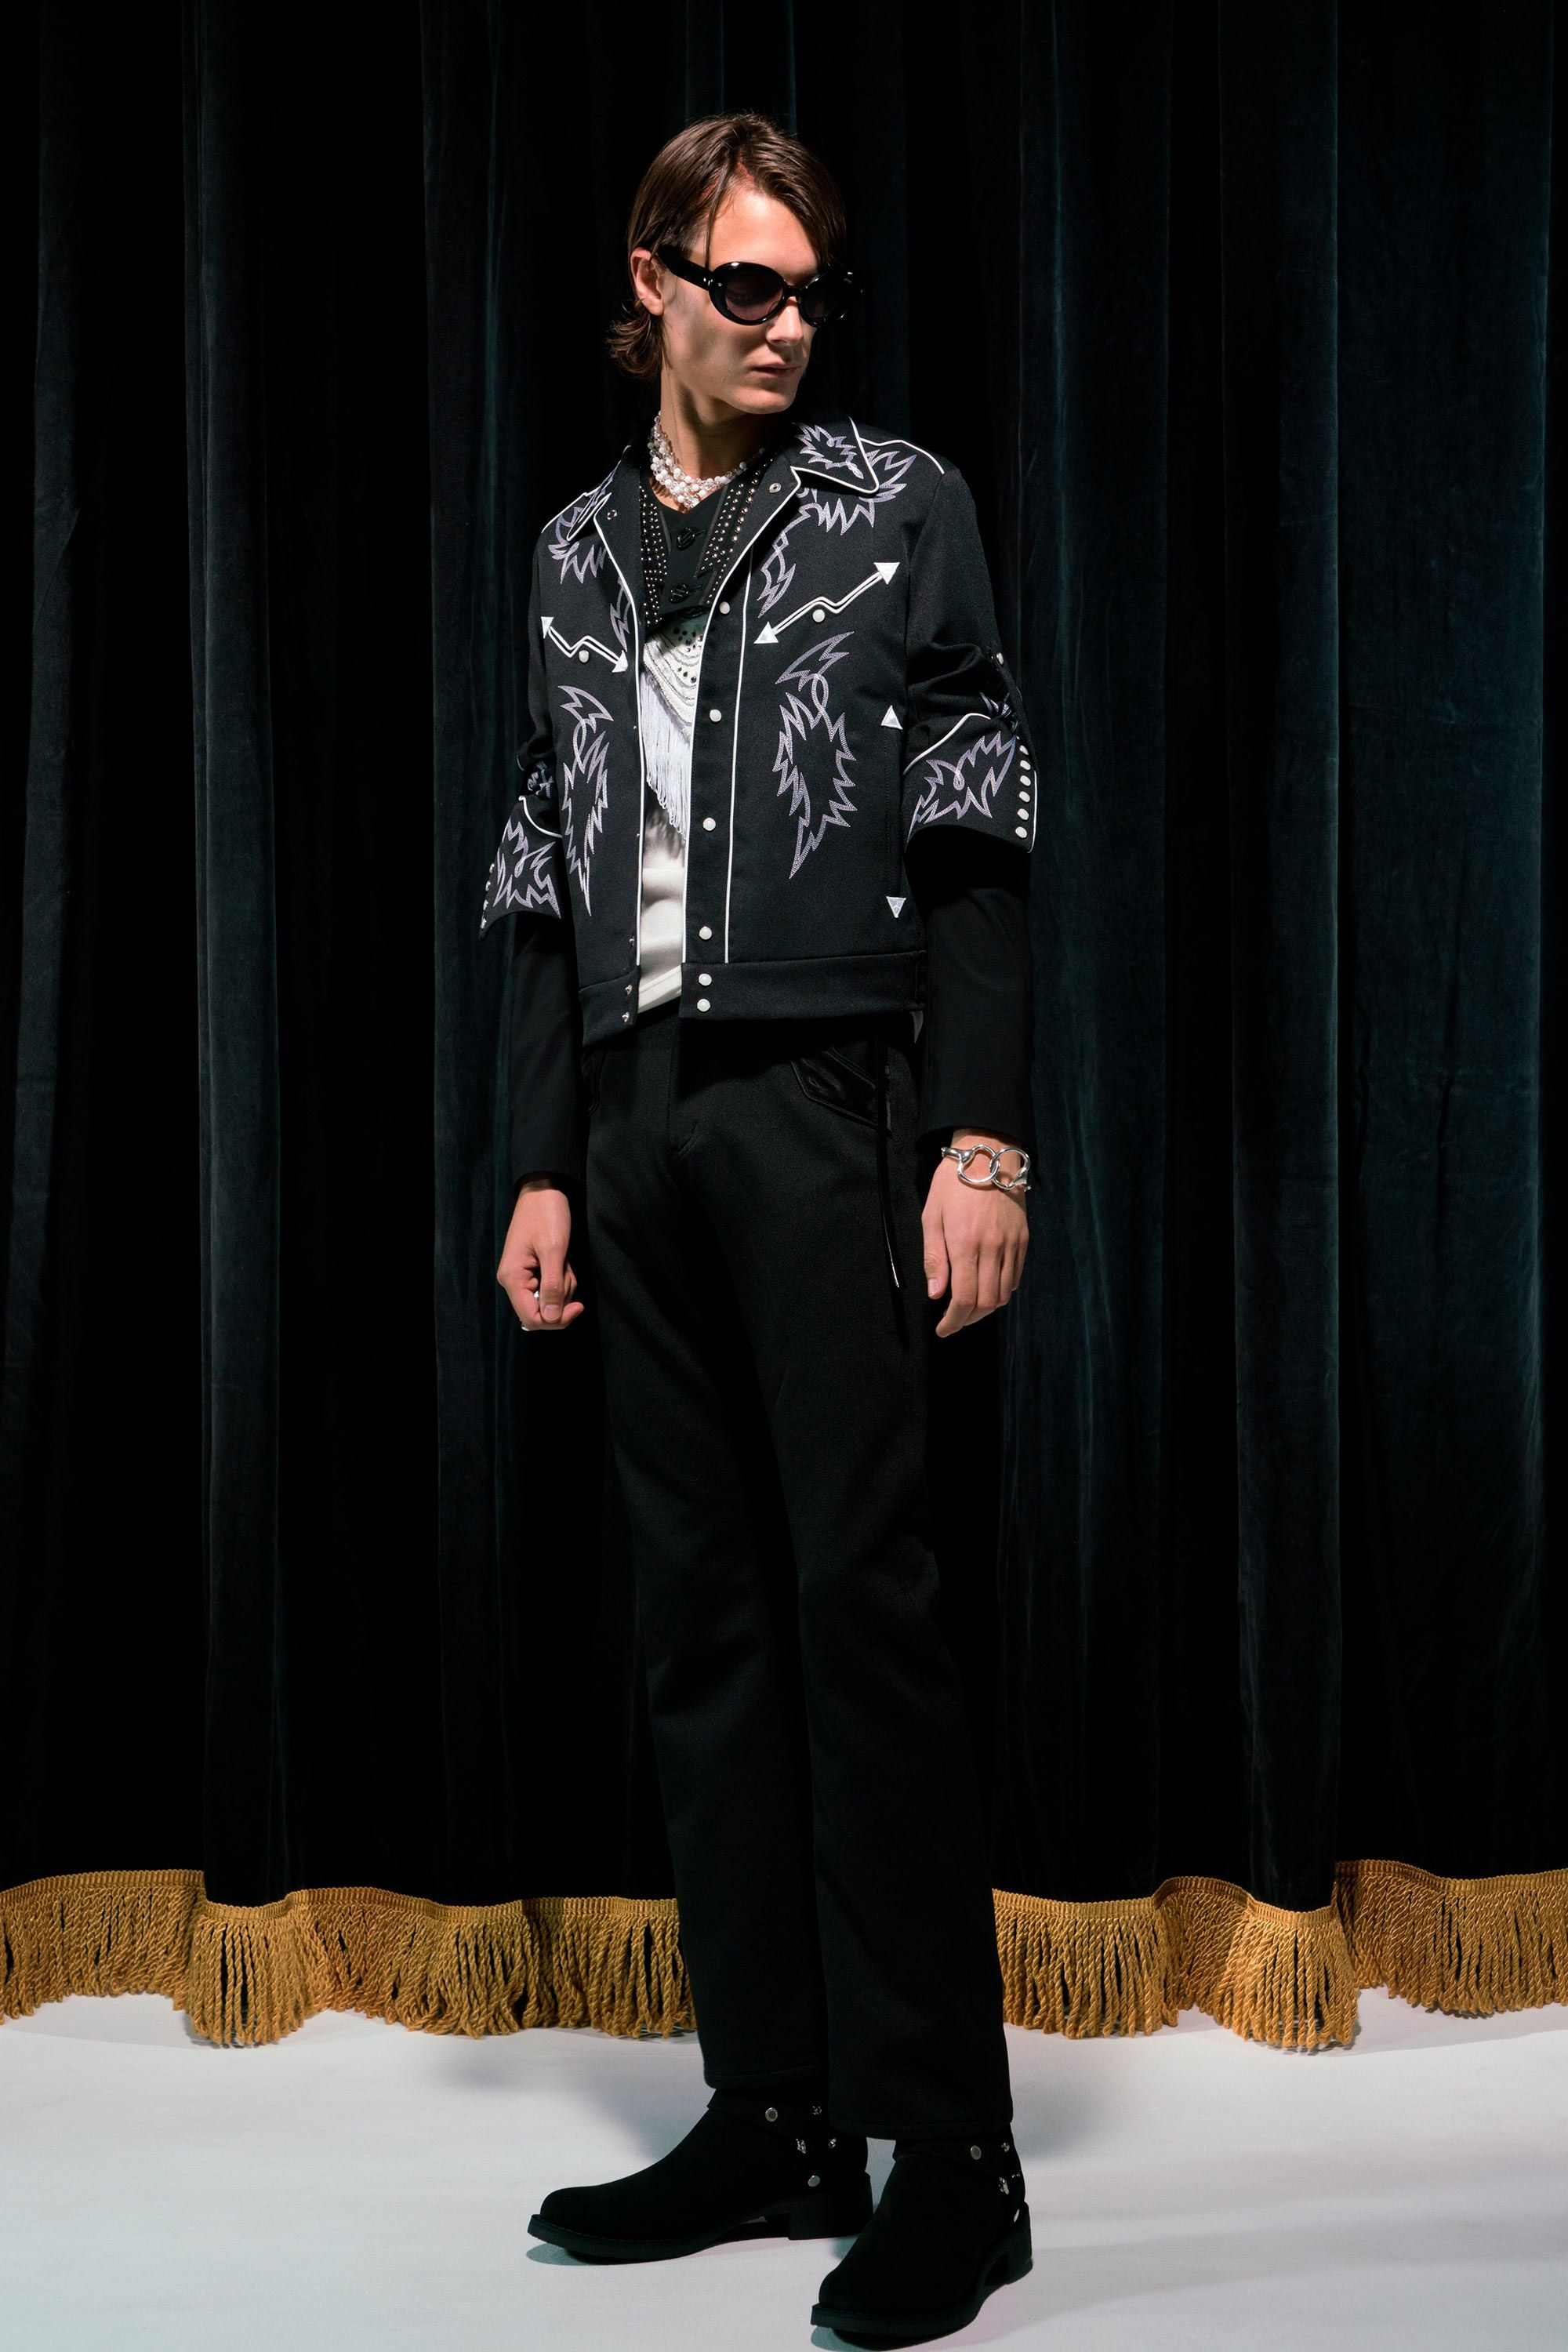 takahiromiyashita the soloist spring menswear fashion show  takahiromiyashita the soloist spring 2018 menswear fashion show